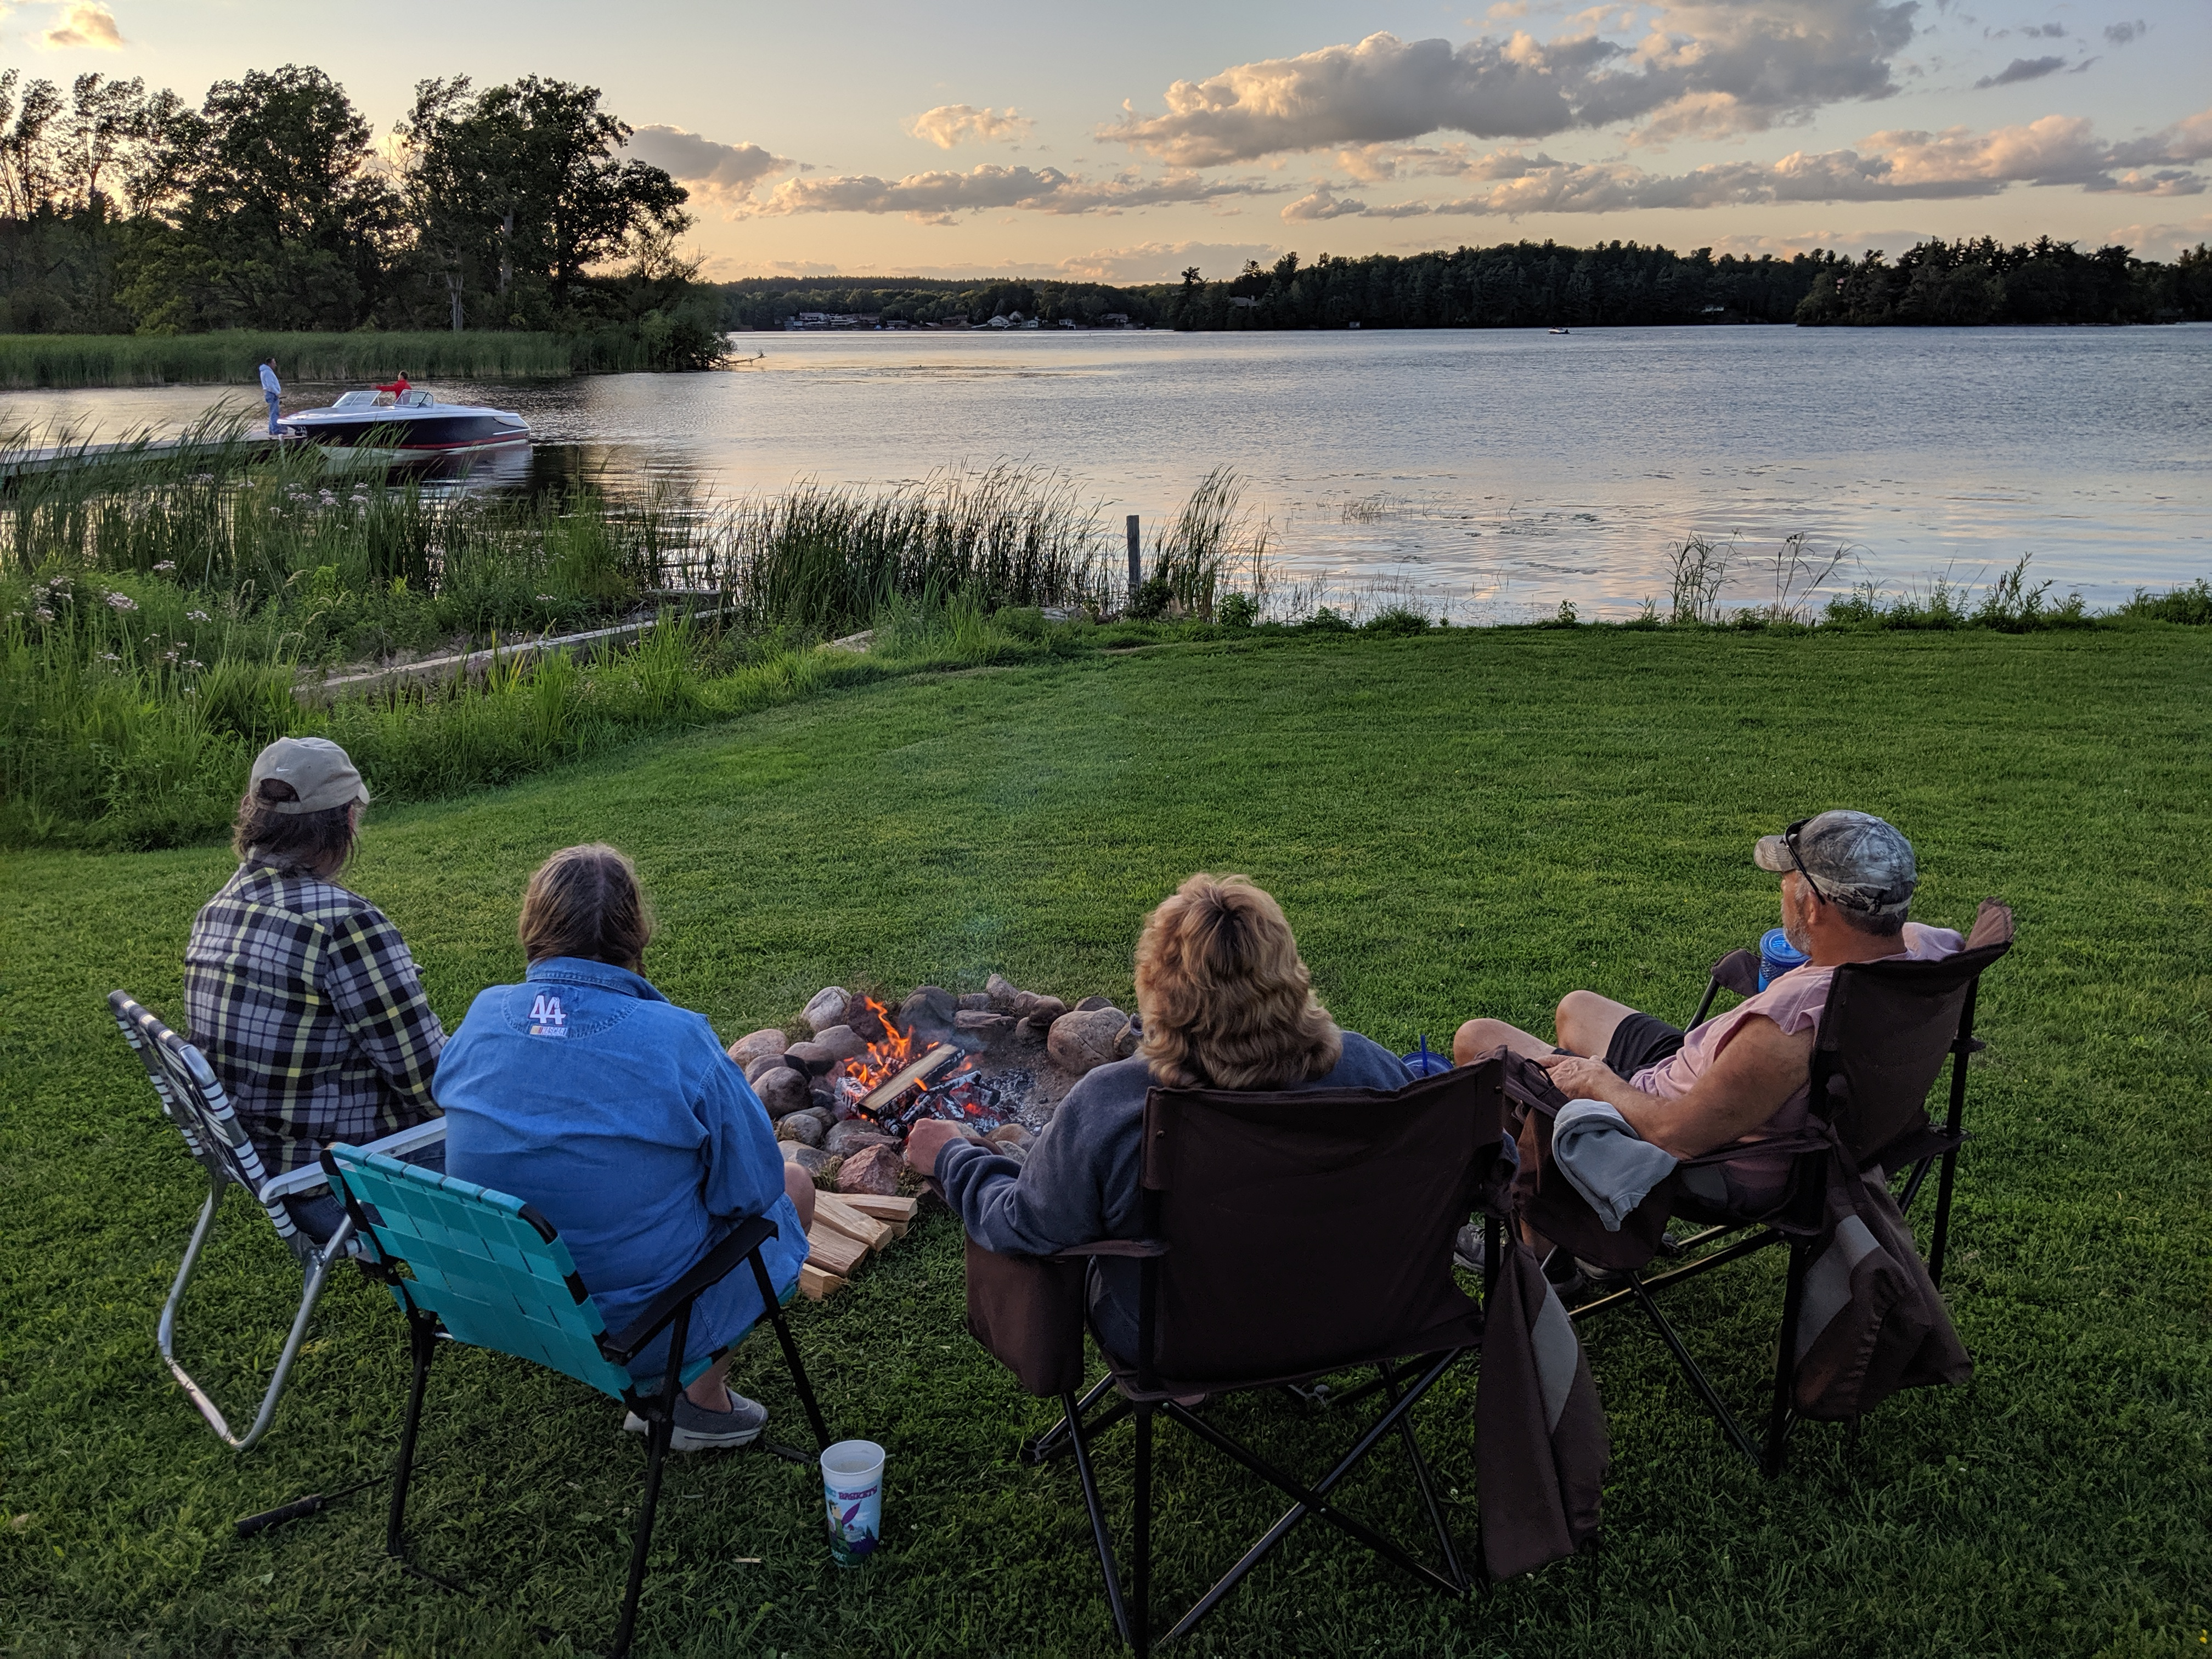 Campfire along the St. Lawrence River